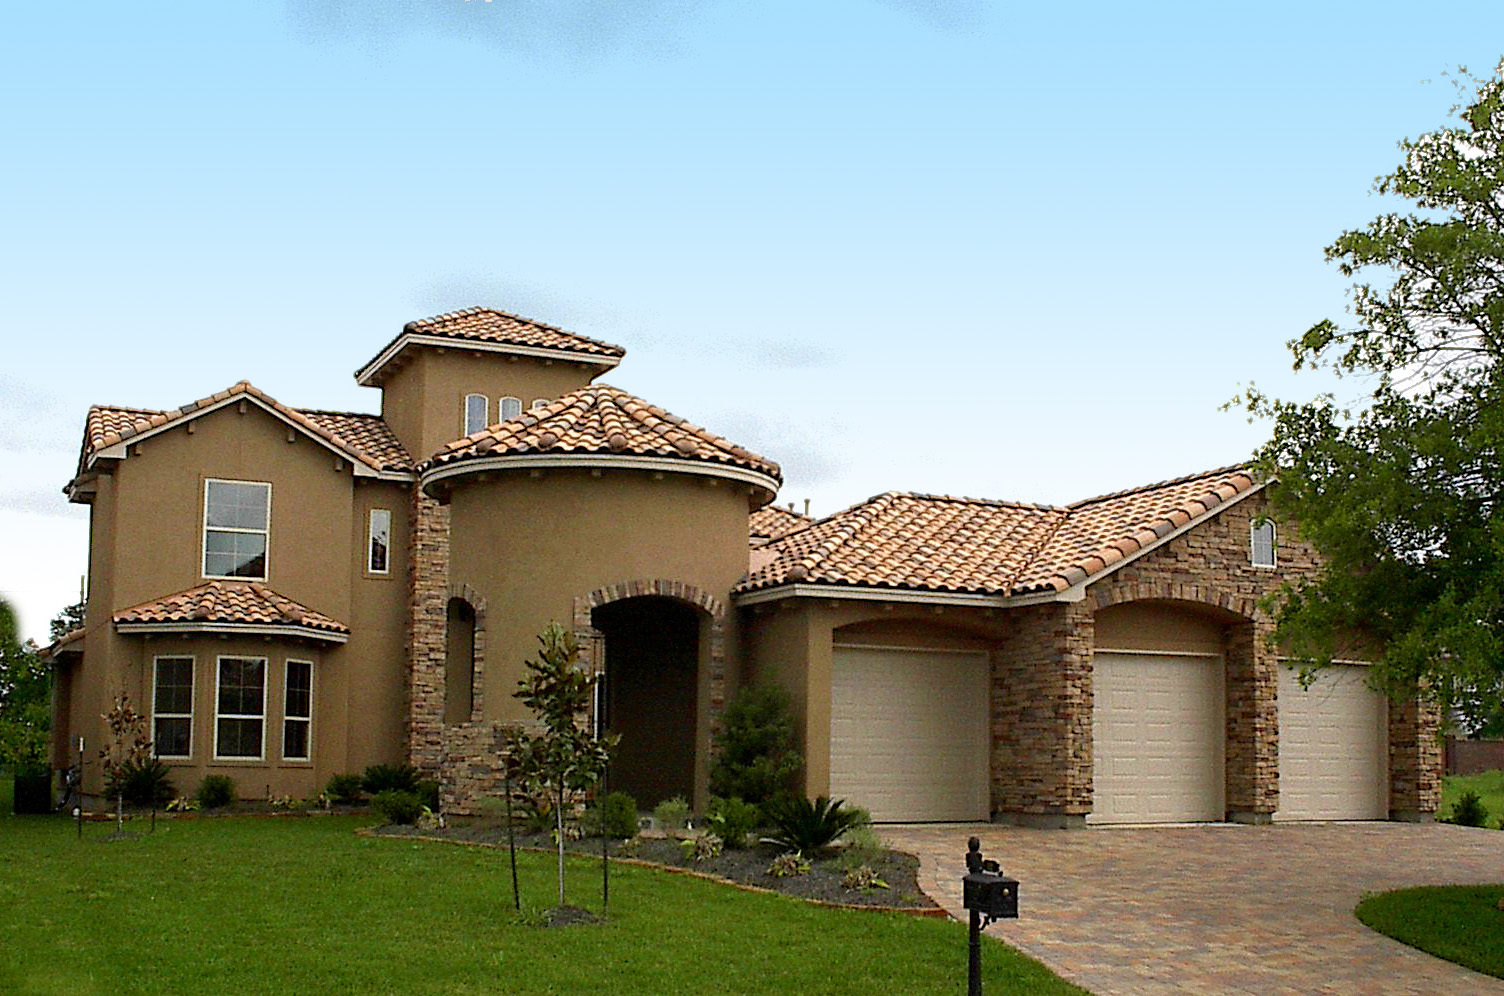 Courtyard beauty 67040gl architectural designs house for Architecturaldesigns com house plan 56364sm asp